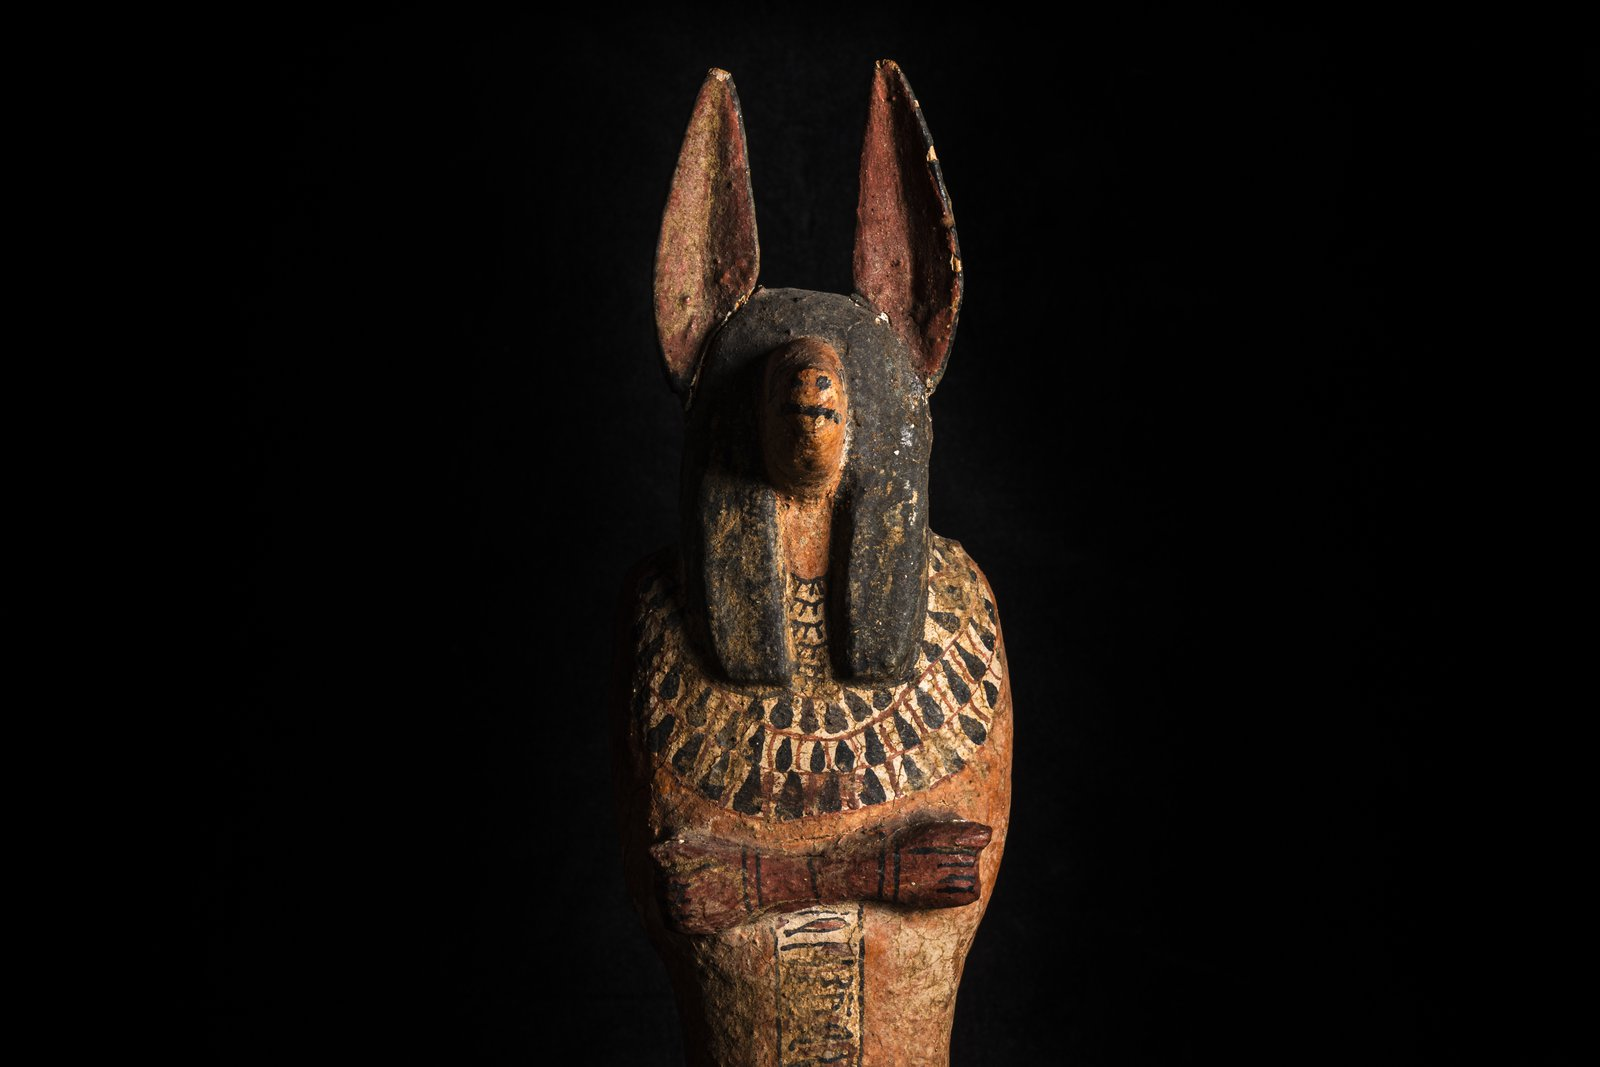 Anubis Figure - Replica E025847